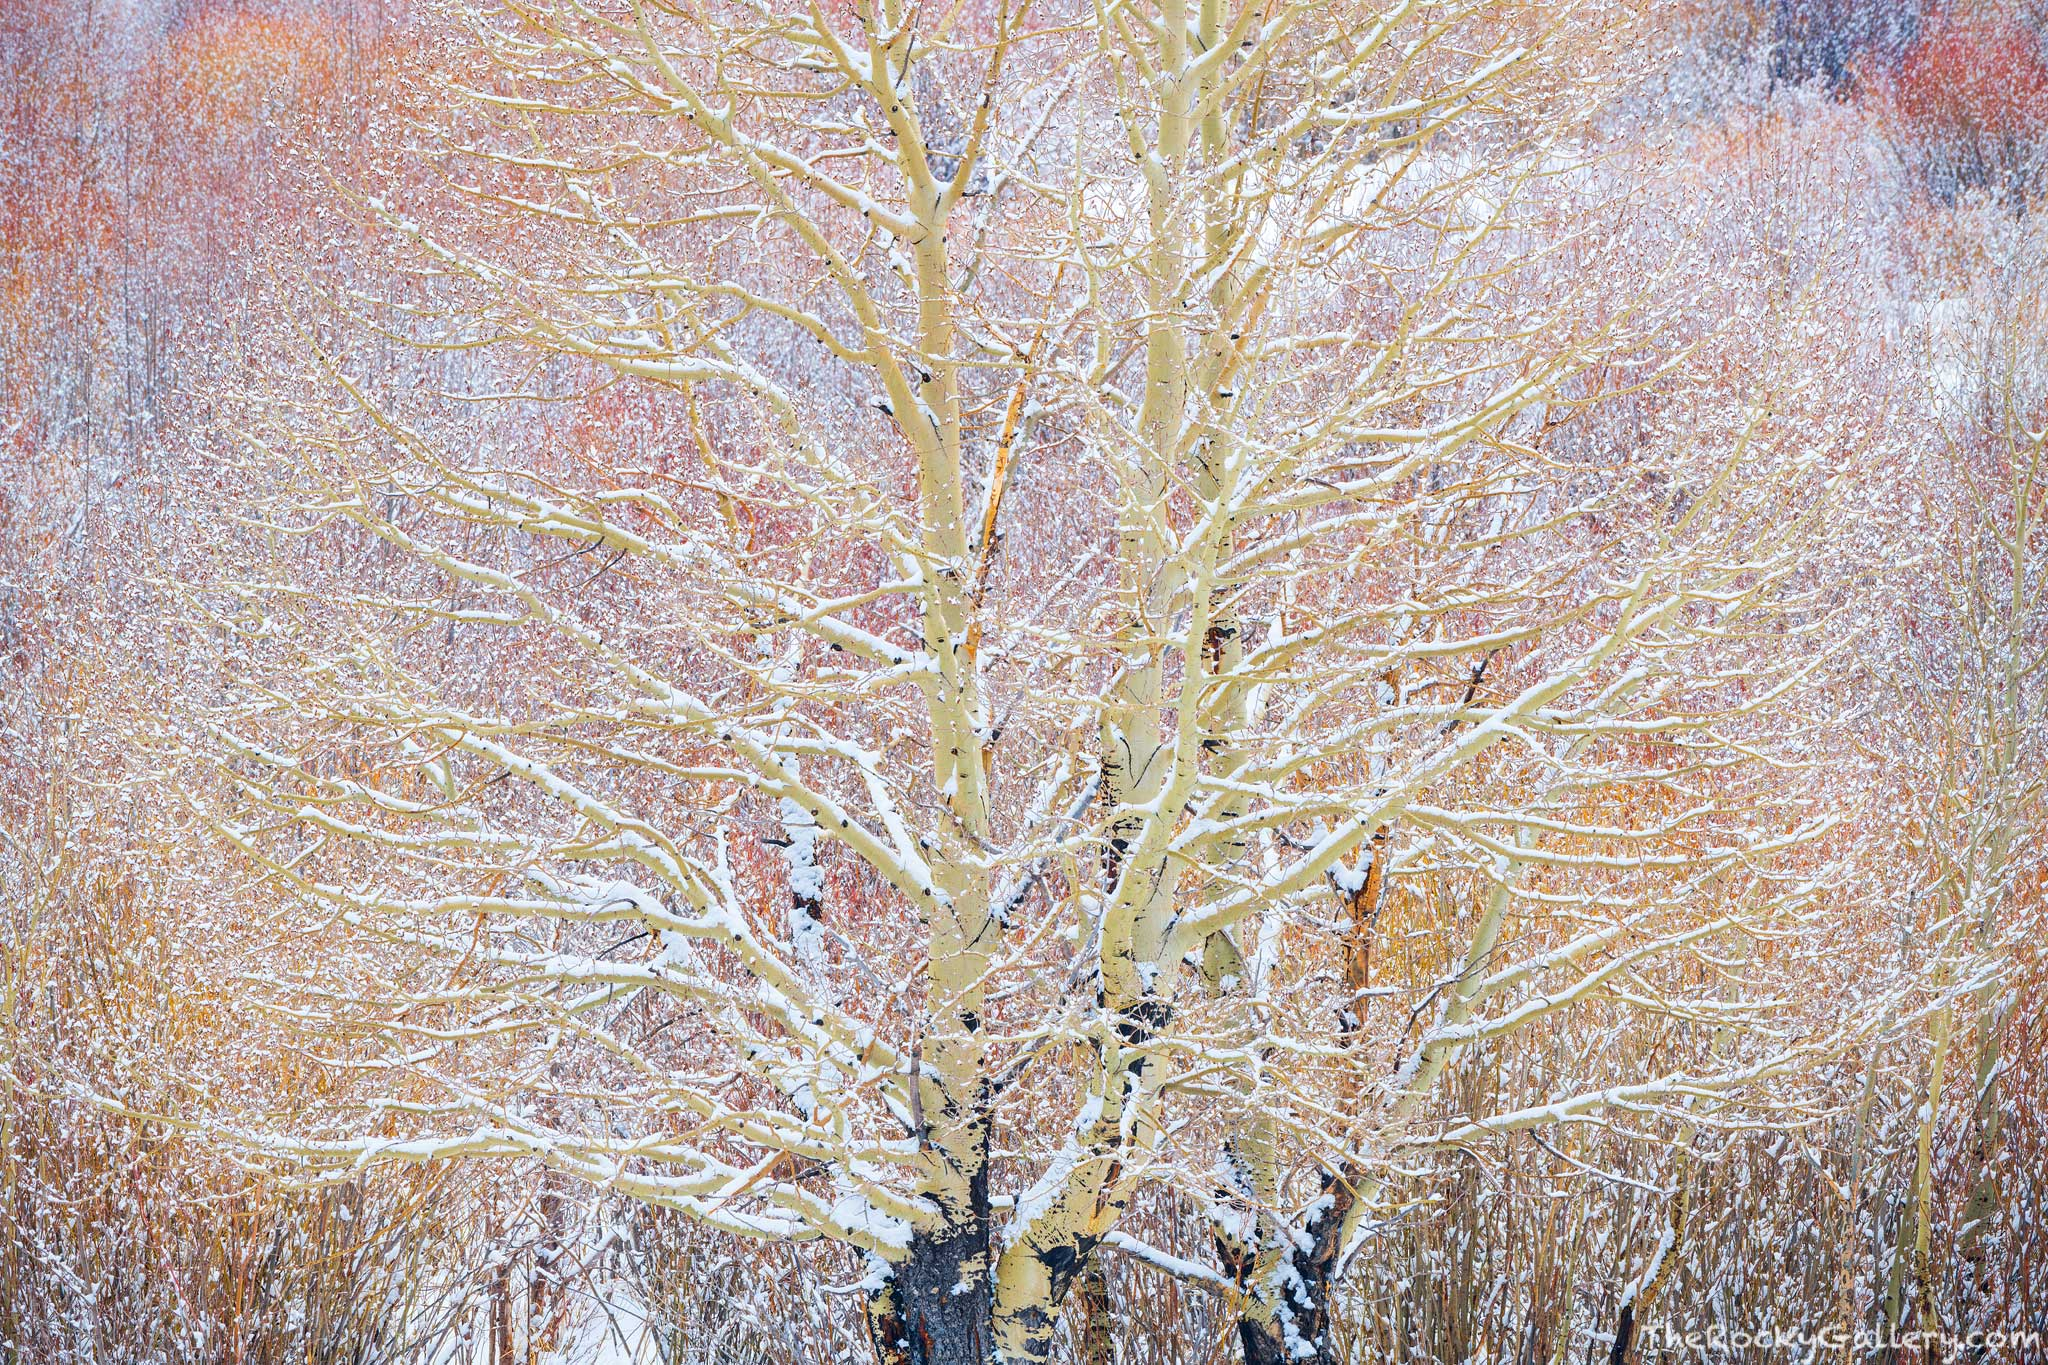 Snow falls on aspen and willows in Hollowell Park on a spring day in April. While aspen trees are glamorized from their beautiful...